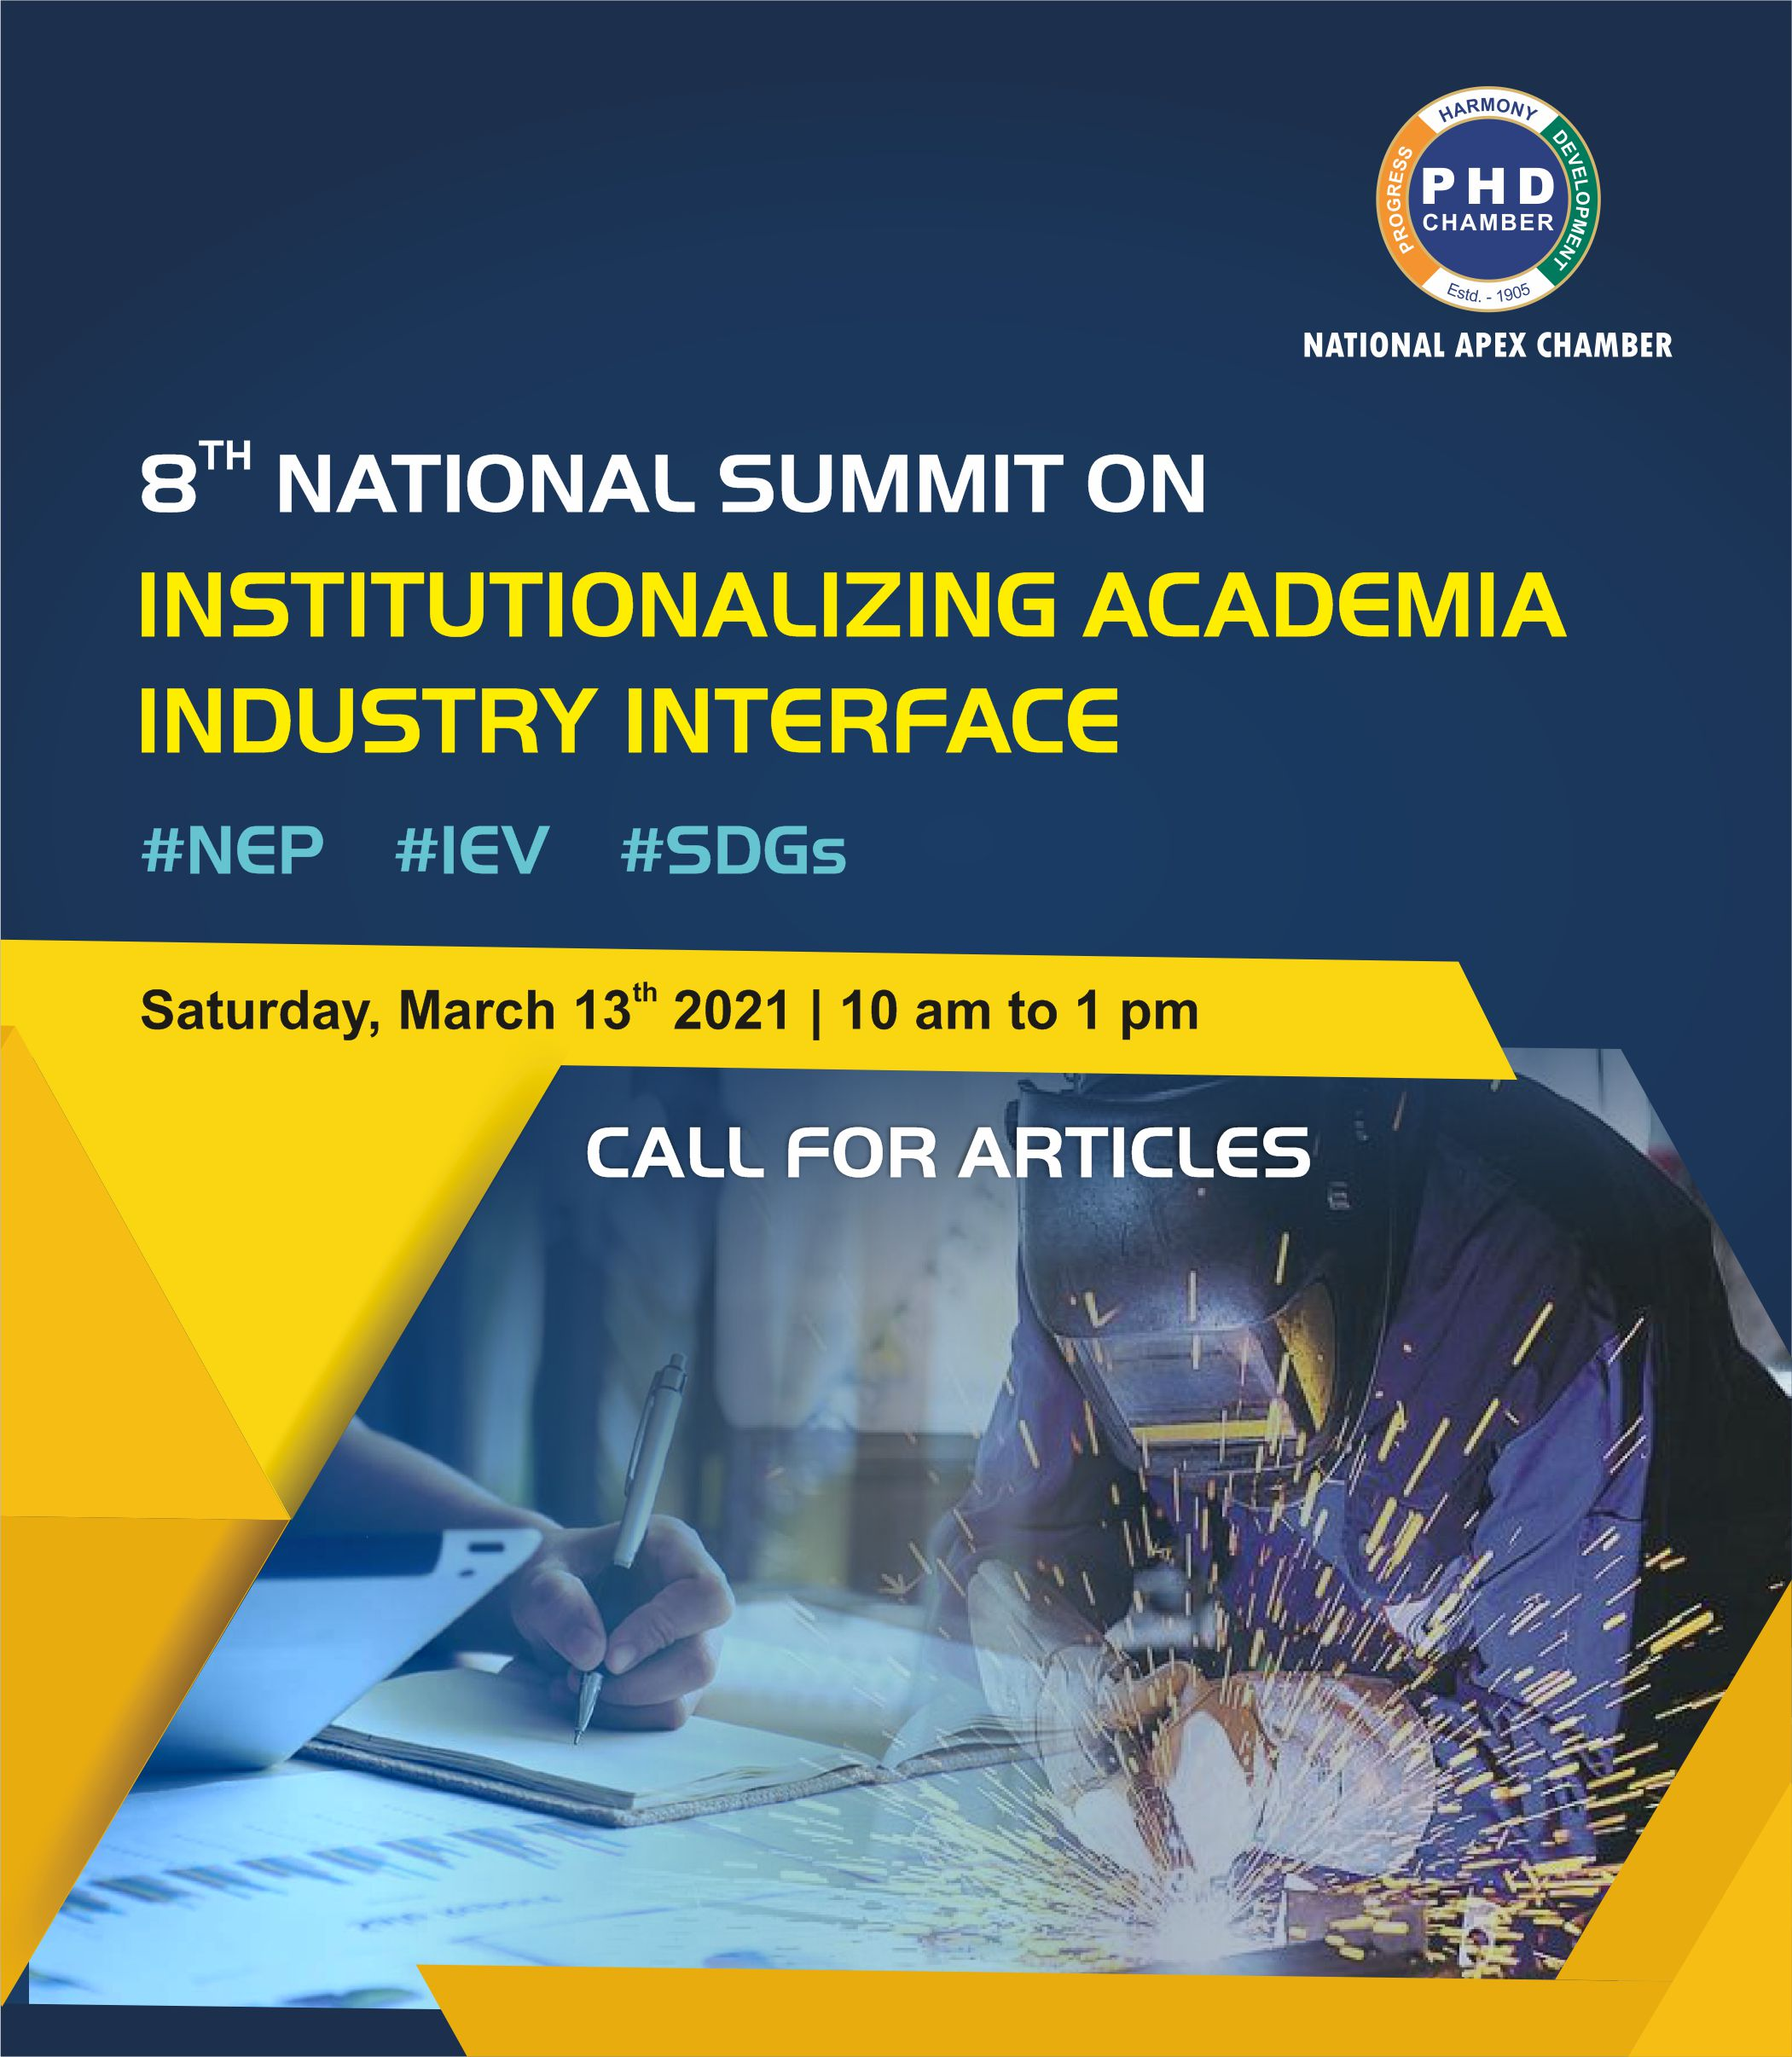 8th National Summit on Institutionalizing Academia Industry